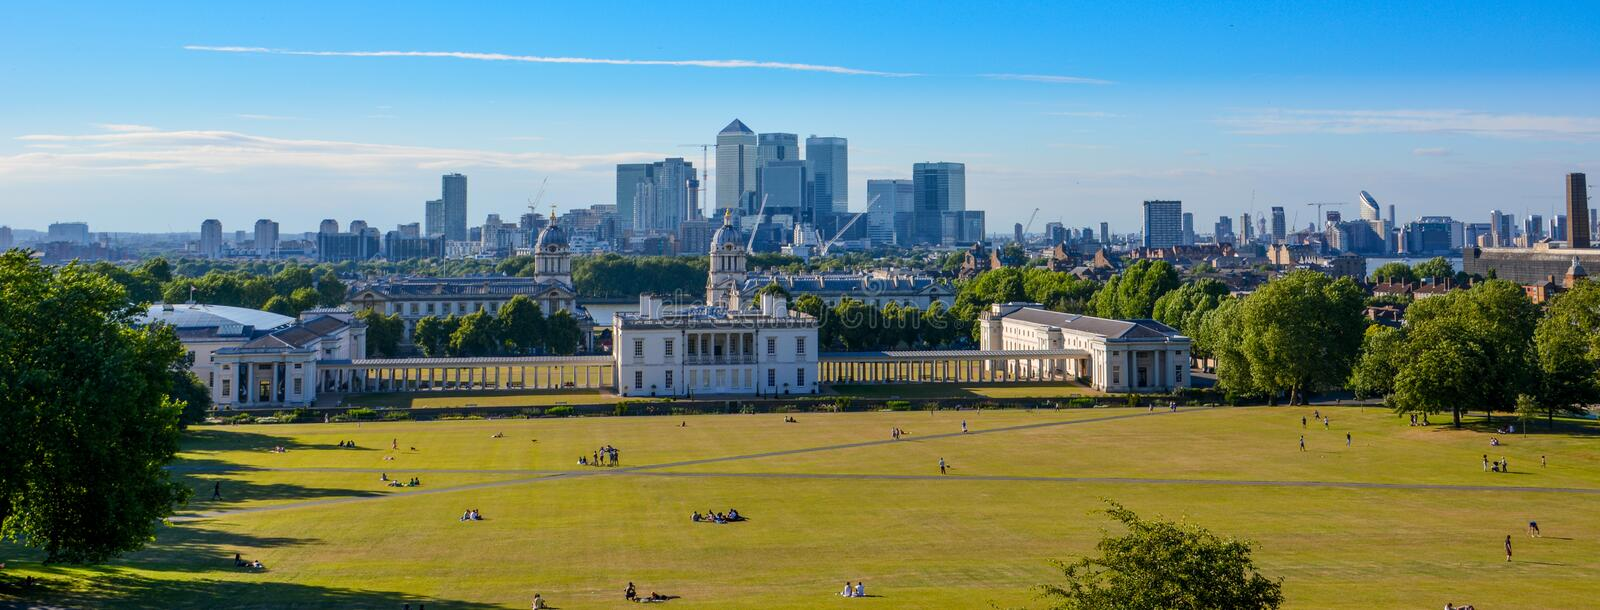 Panorama Cityscape View from Greenwich, London, England, UK. royalty free stock images